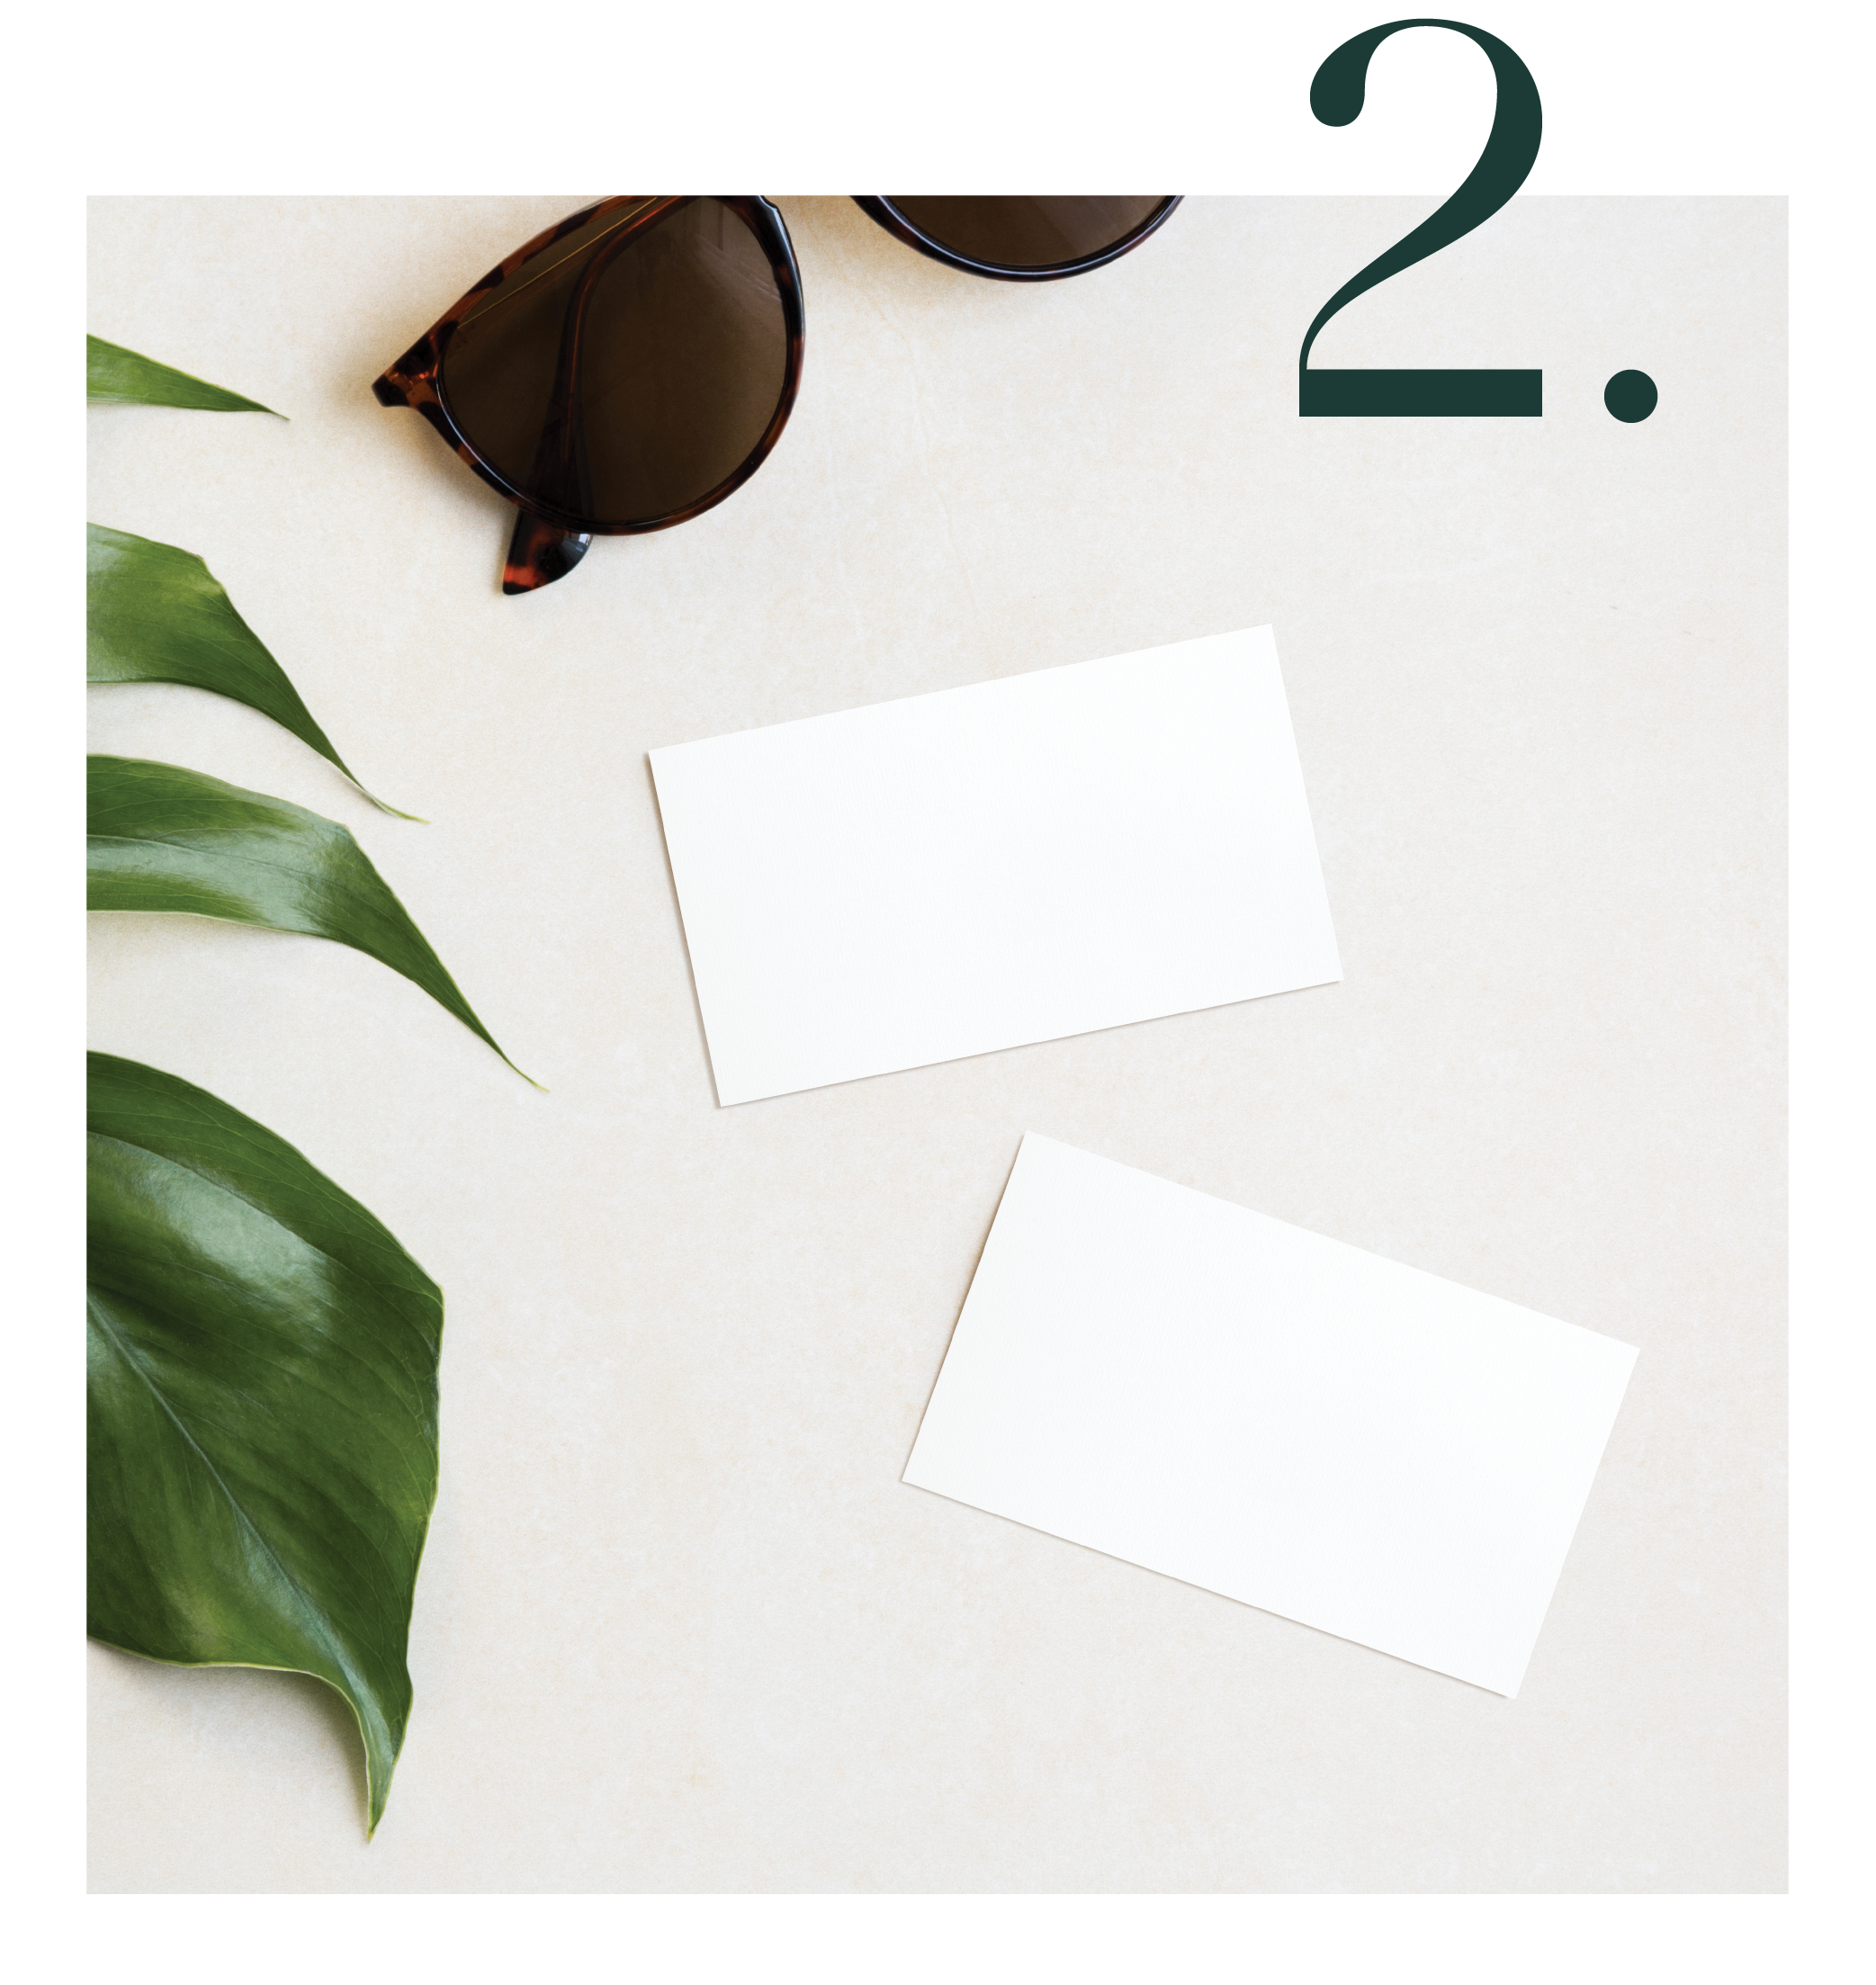 Graphic shows 2 white business cards next to a large tropical leaf and a pair of sunglasses, with the number 1 on top of the image to signify the first service offered by Salt Design Co.